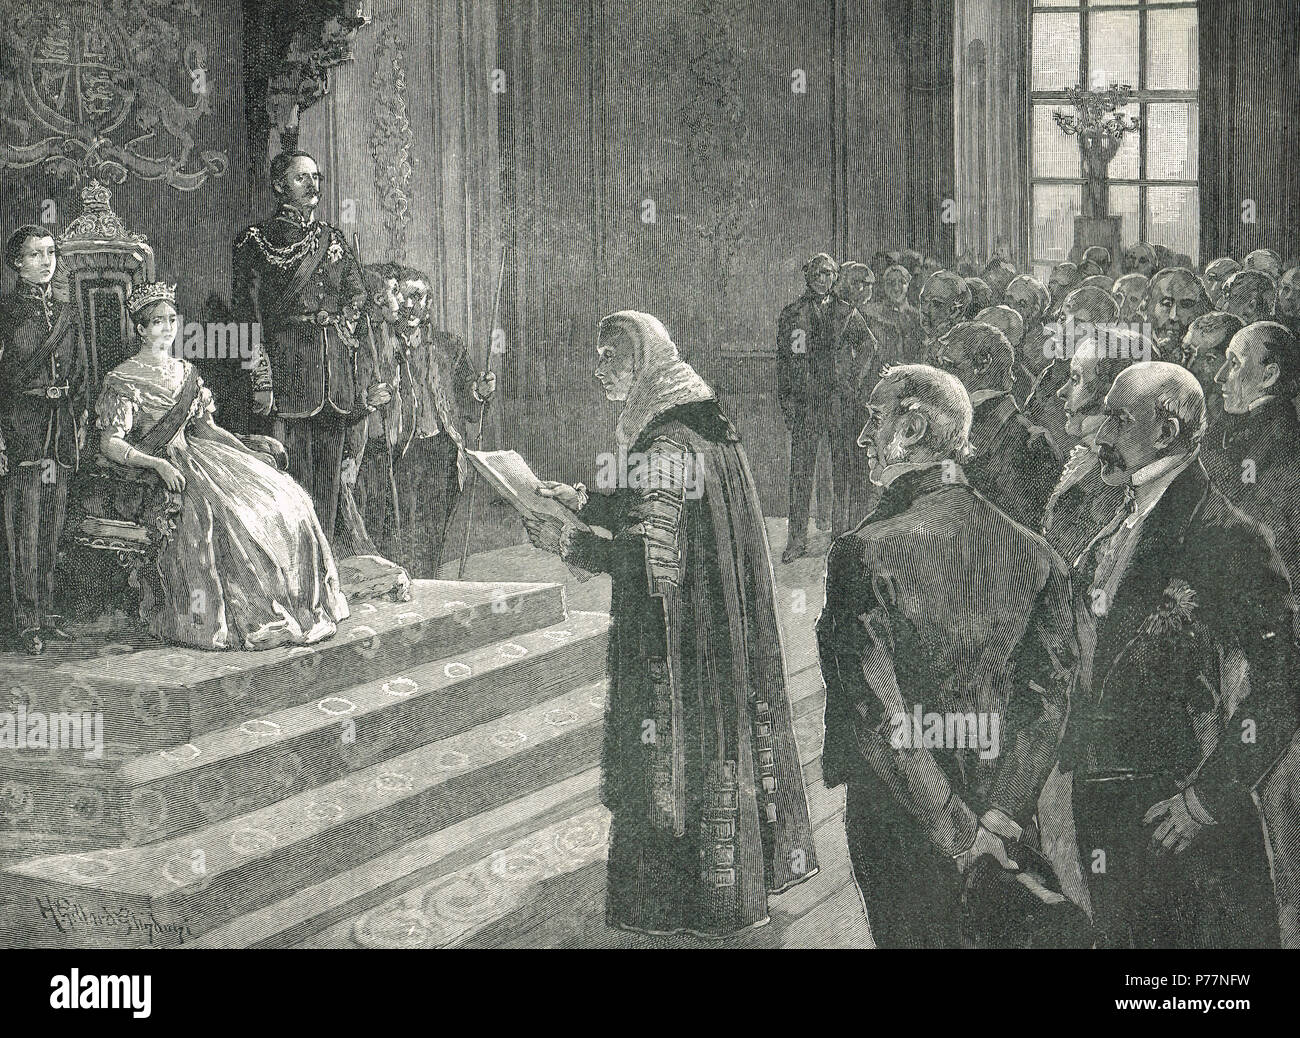 Patriotic address to Queen Victoria, on the Eve of the Crimean War, 3 April 1853.  An address recording Russian transgressions from both houses of parliament. - Stock Image